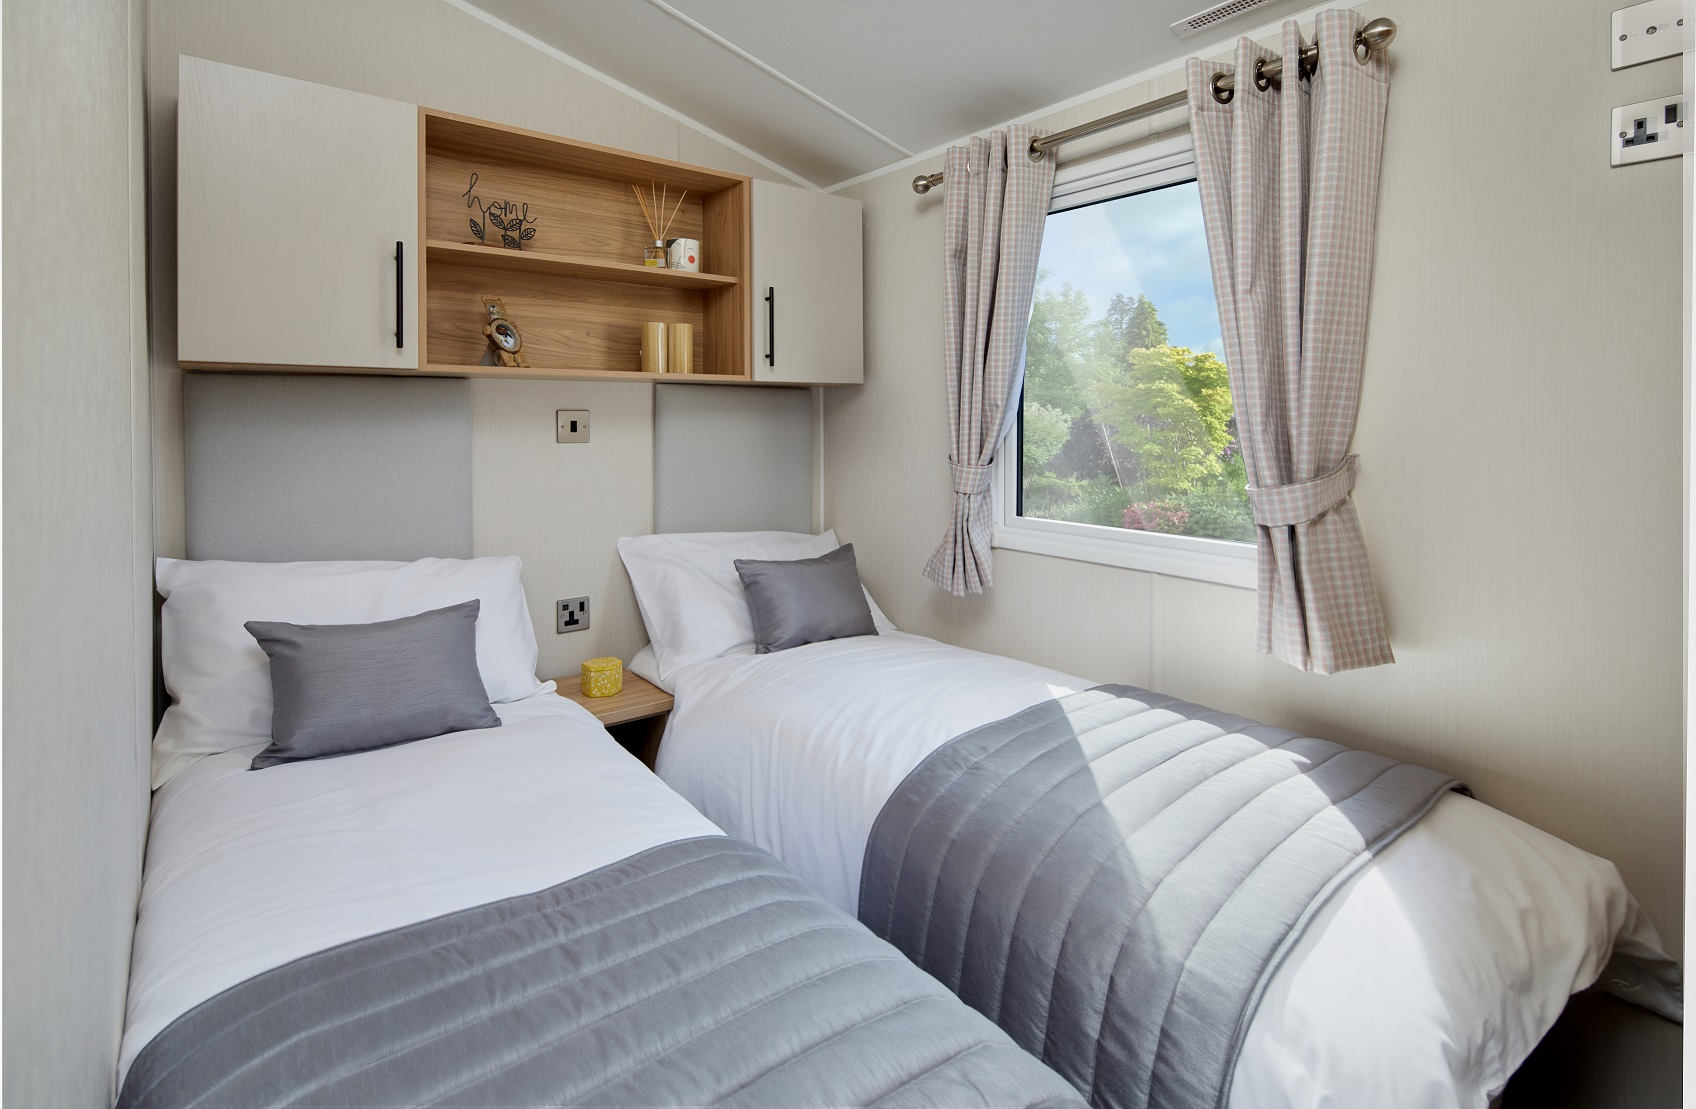 Willerby Manor: New Static Caravans and Holiday Homes for Sale, Clifton, Morpeth Image 3